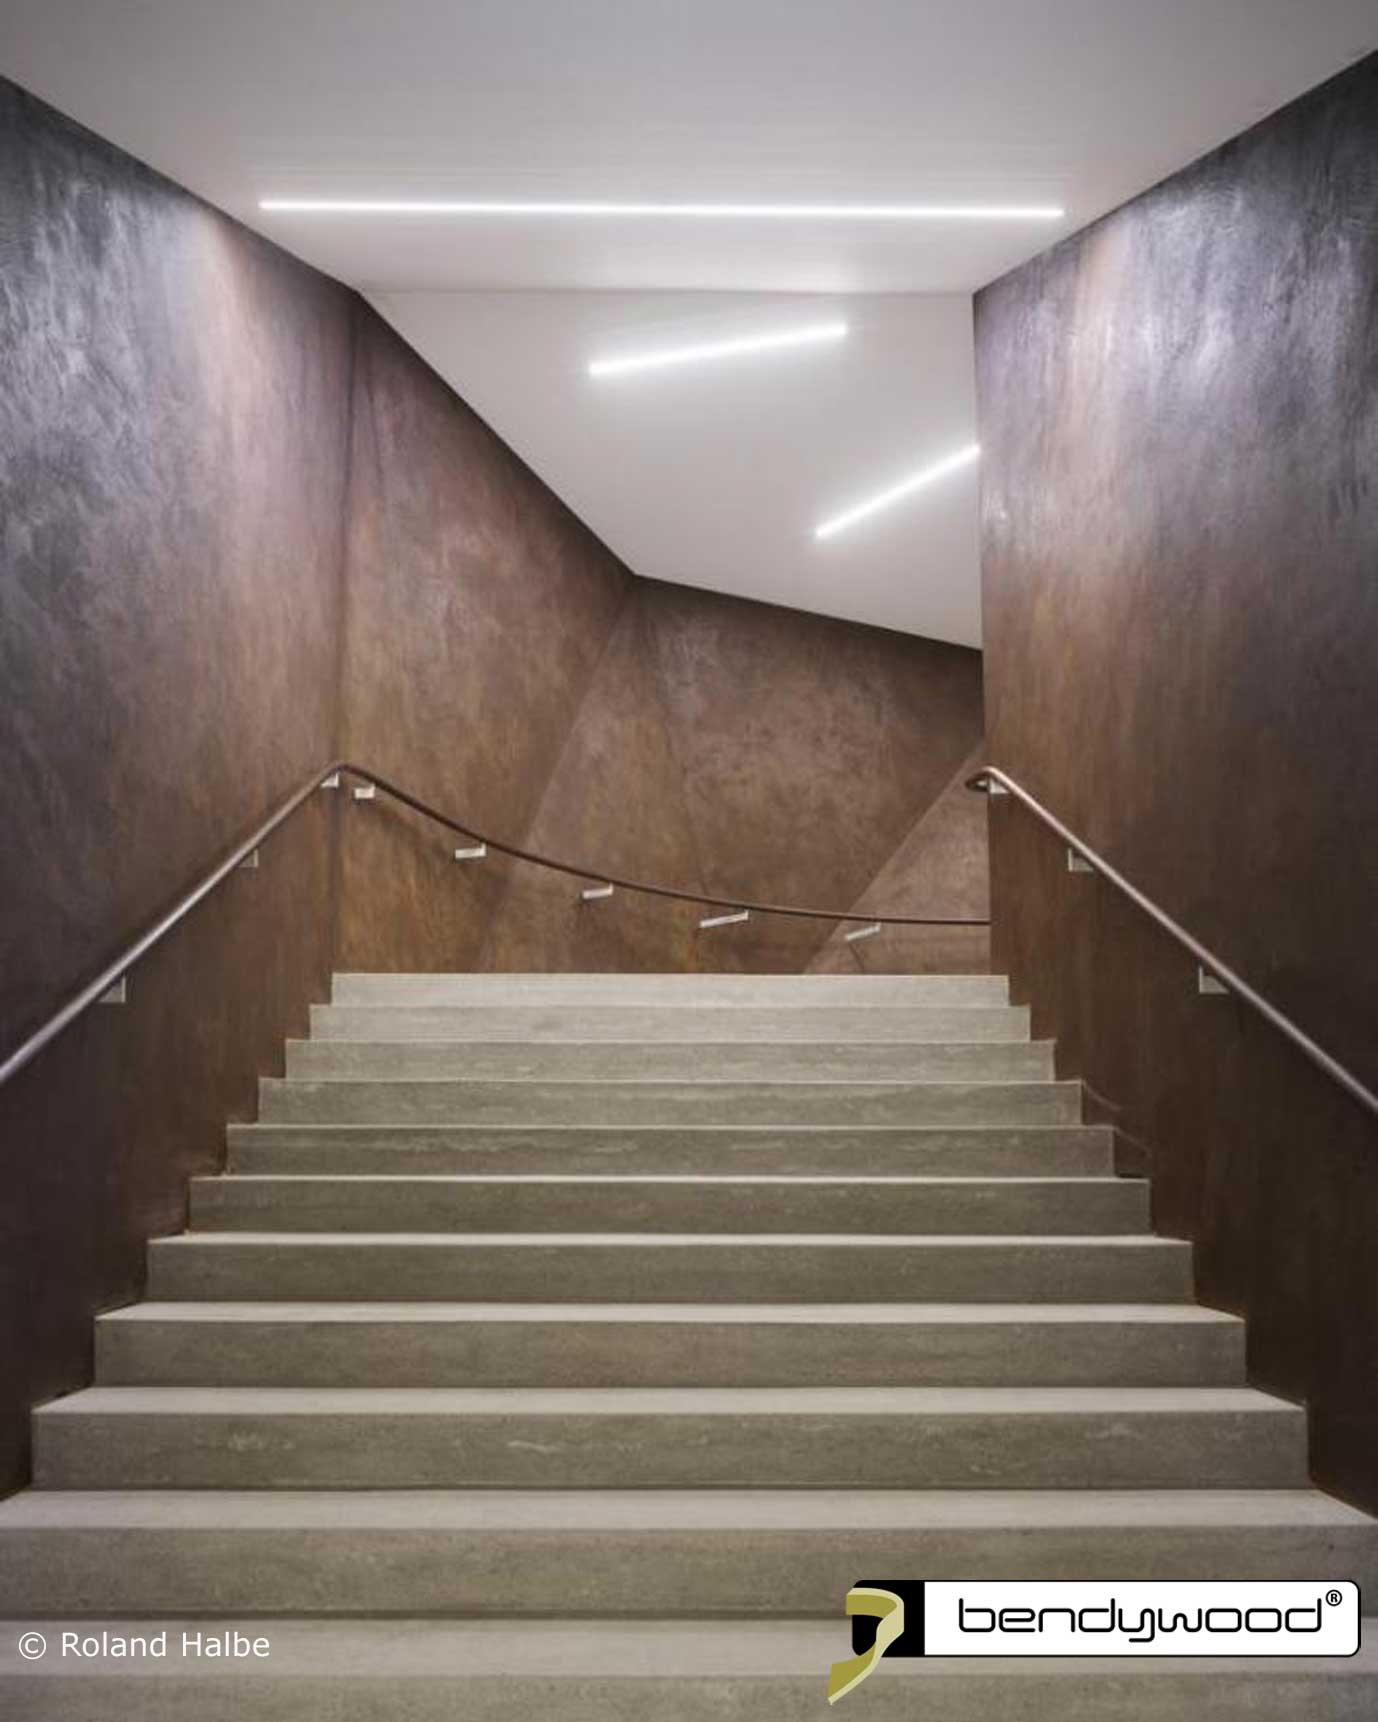 Stairs new concert hall Andermatt, Switzerland. Curved inner and outer handrails in Bendywood® oak.